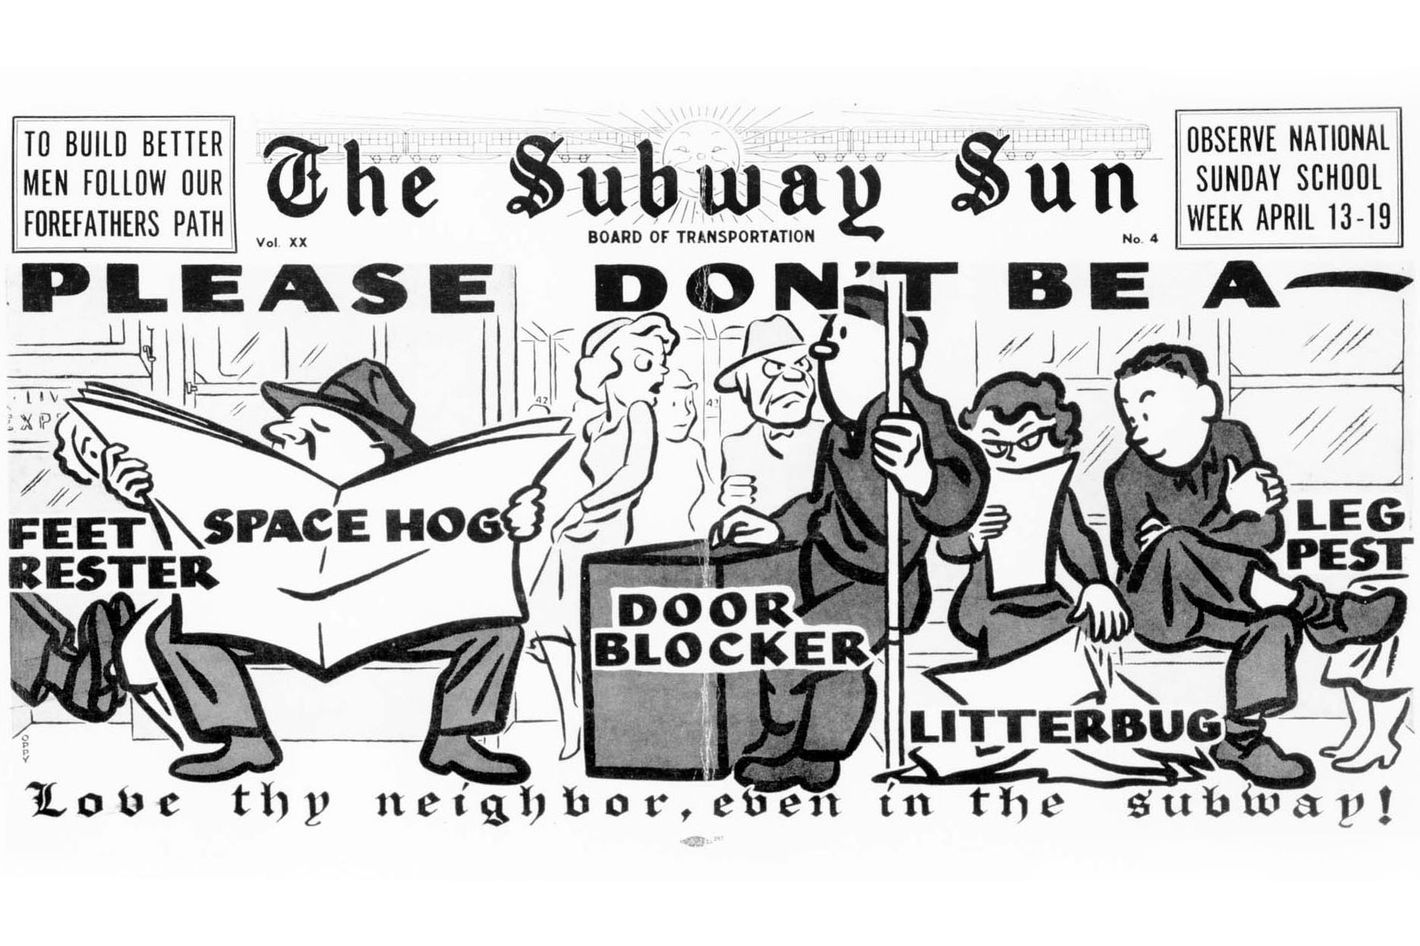 See vintage manspreading ads and more from the 40s and 50s see vintage manspreading ads and more from the 40s and 50s subway courtesy campaign biocorpaavc Gallery